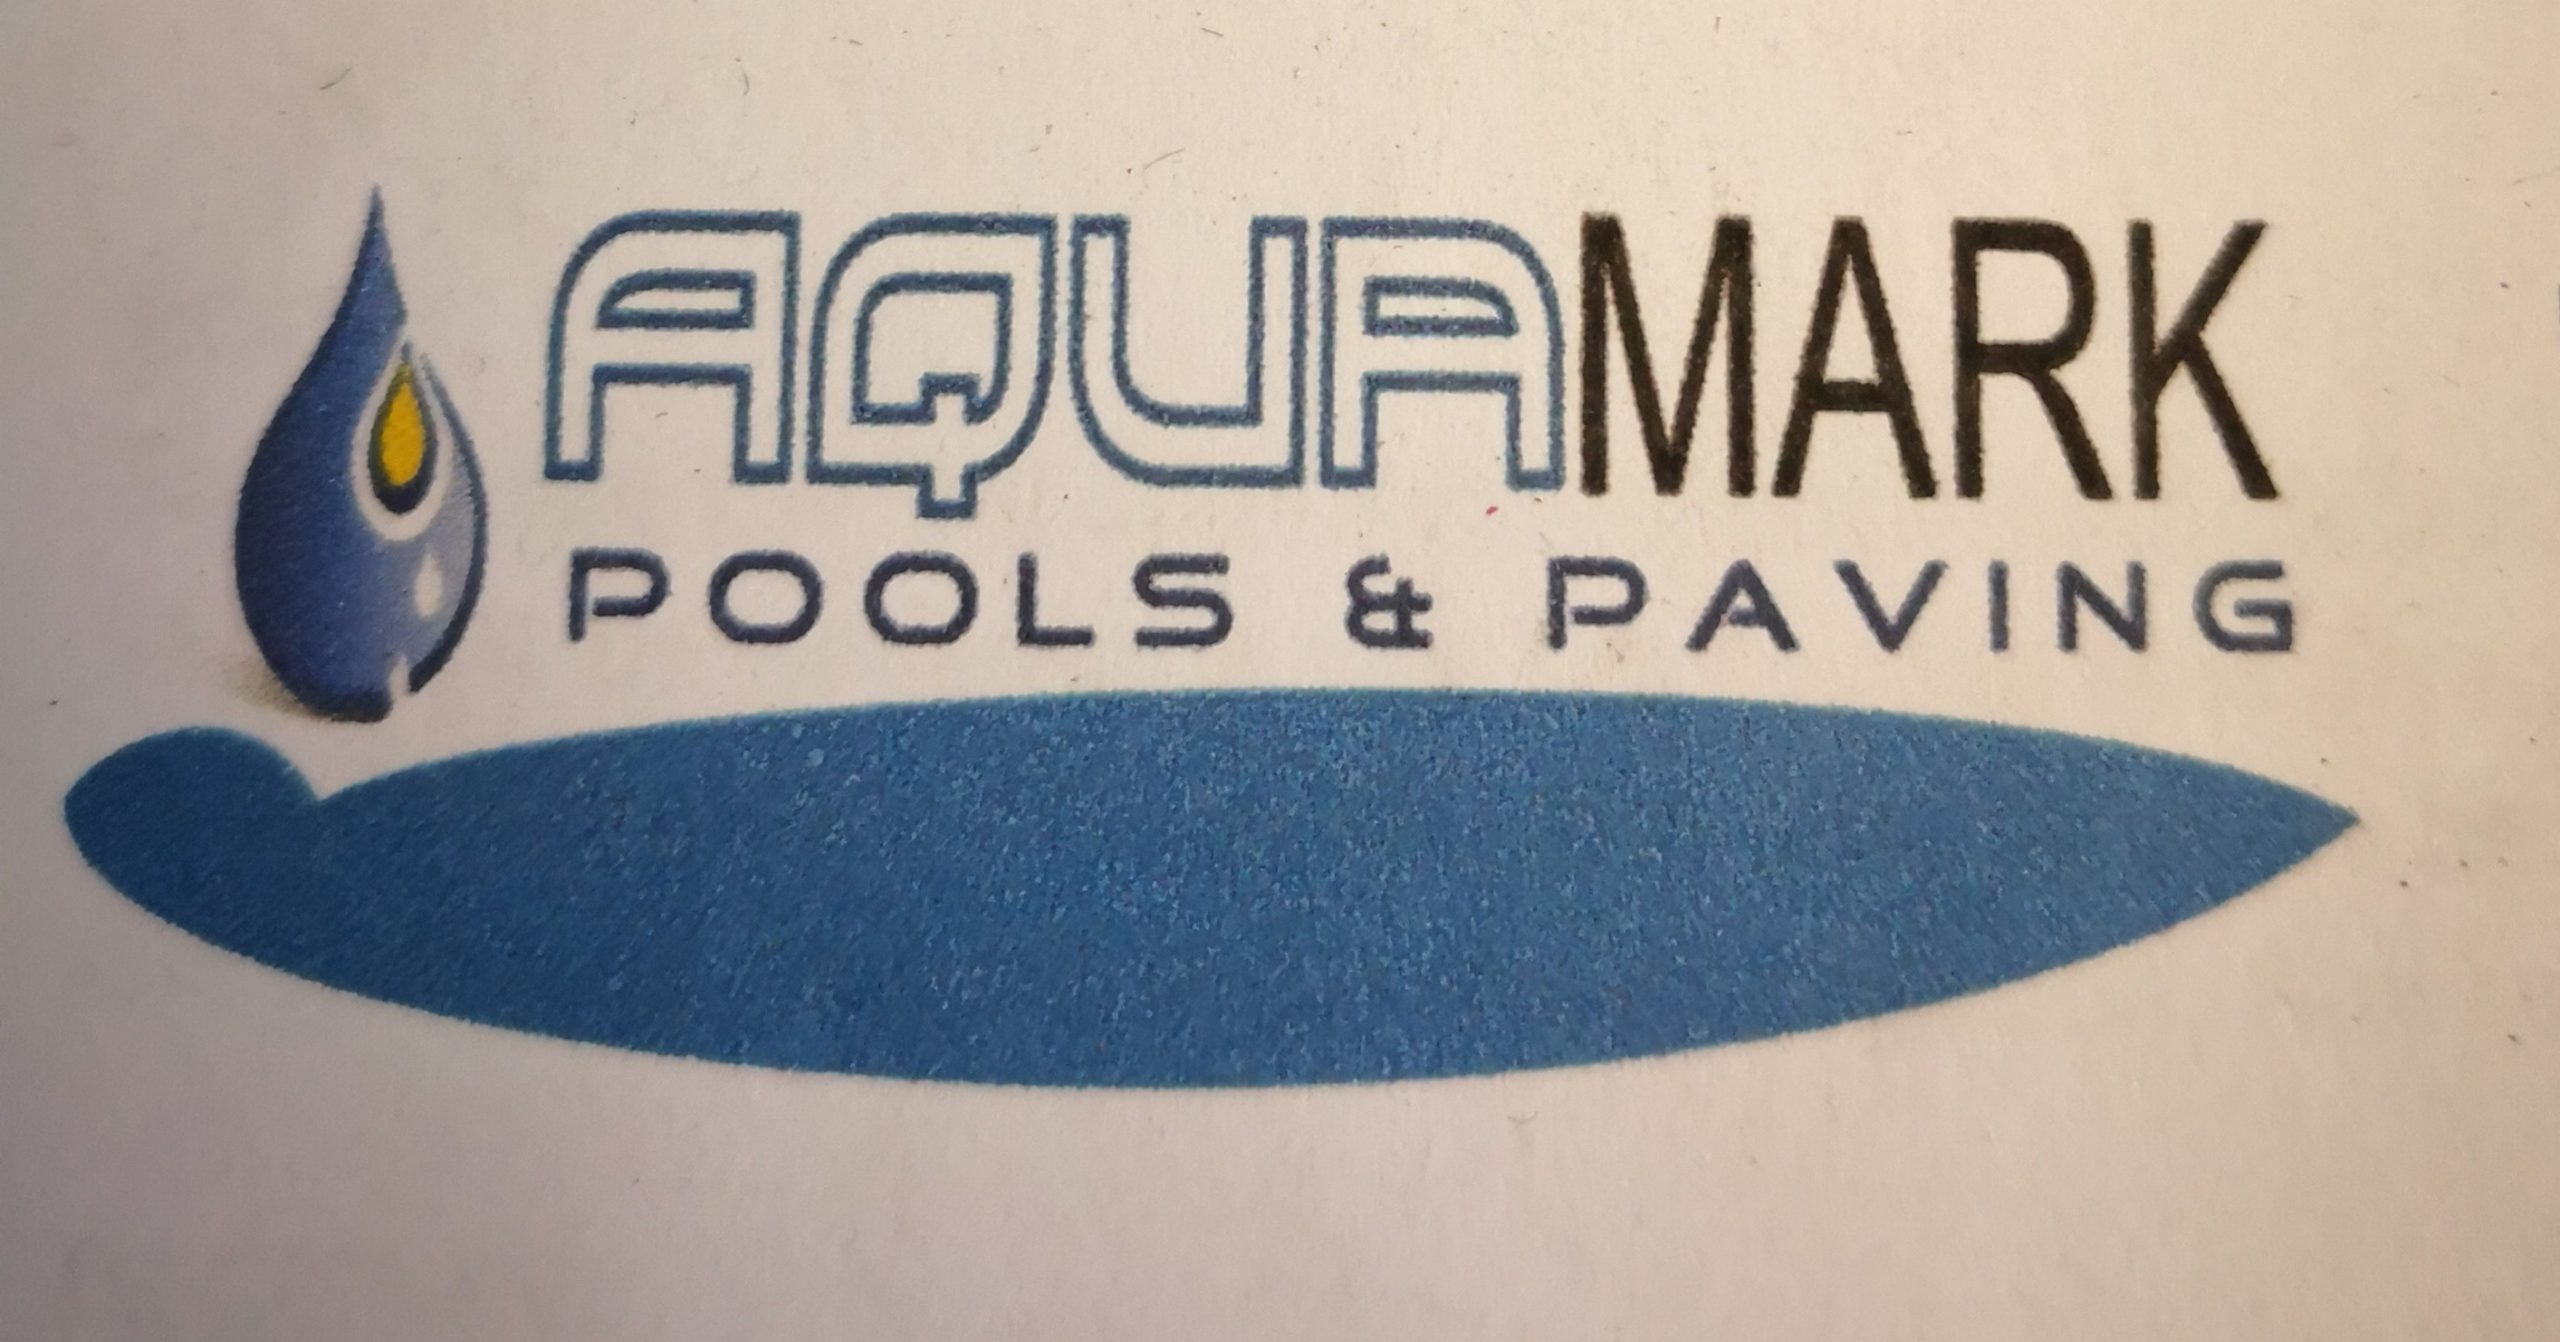 New swimming pools, pool renovations, repairs & paving